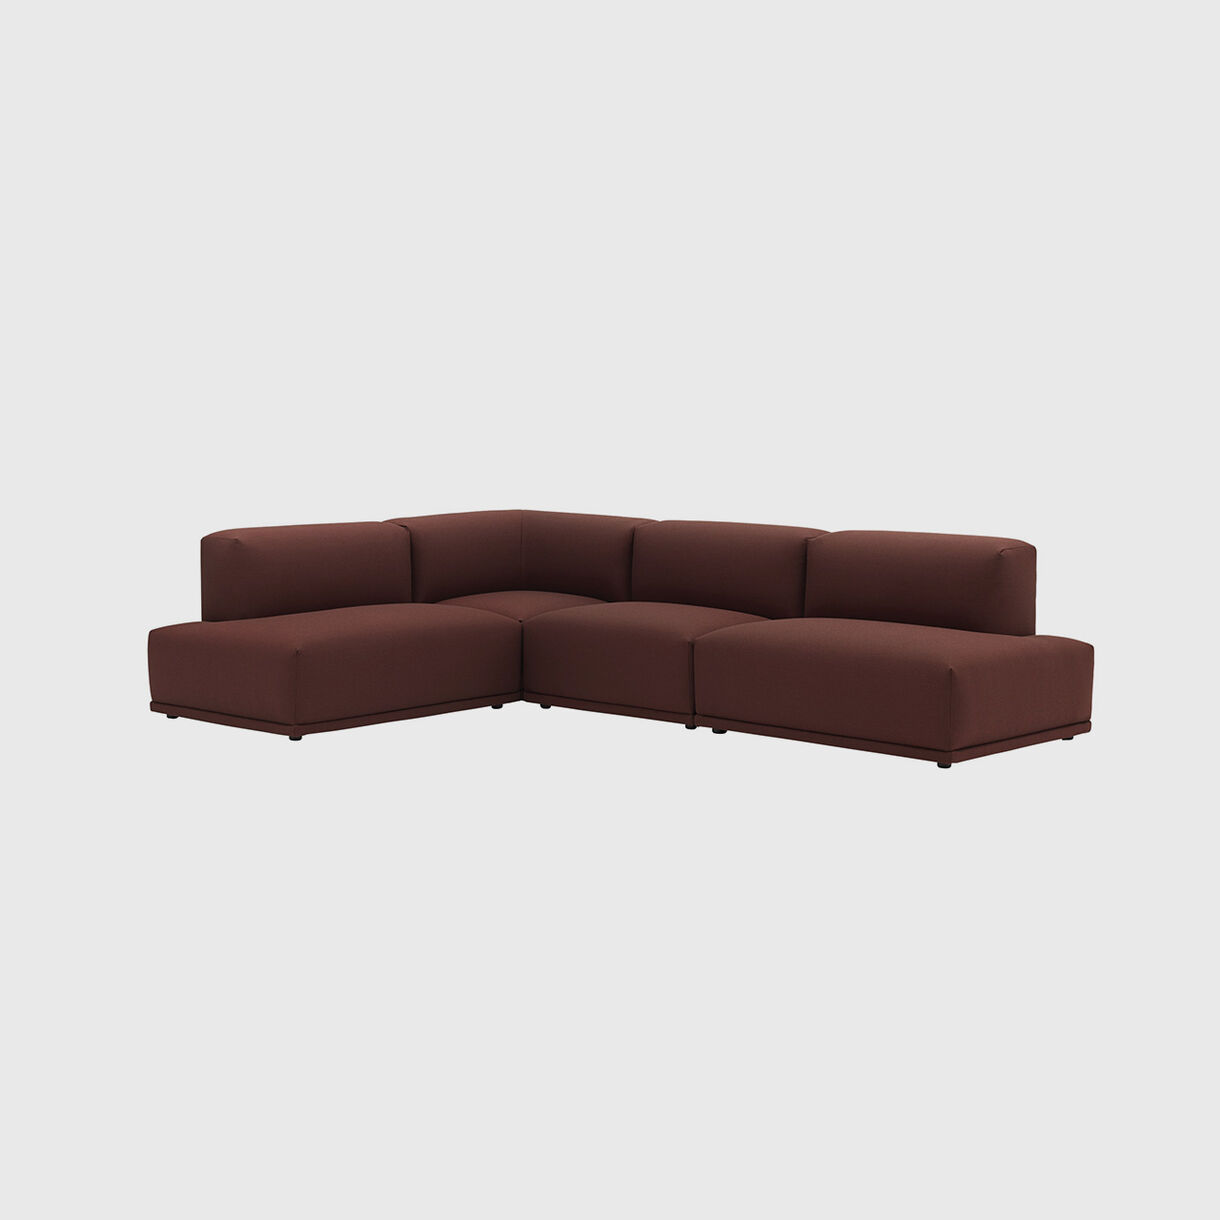 Connect Modular Corner Sofa, Rime 591